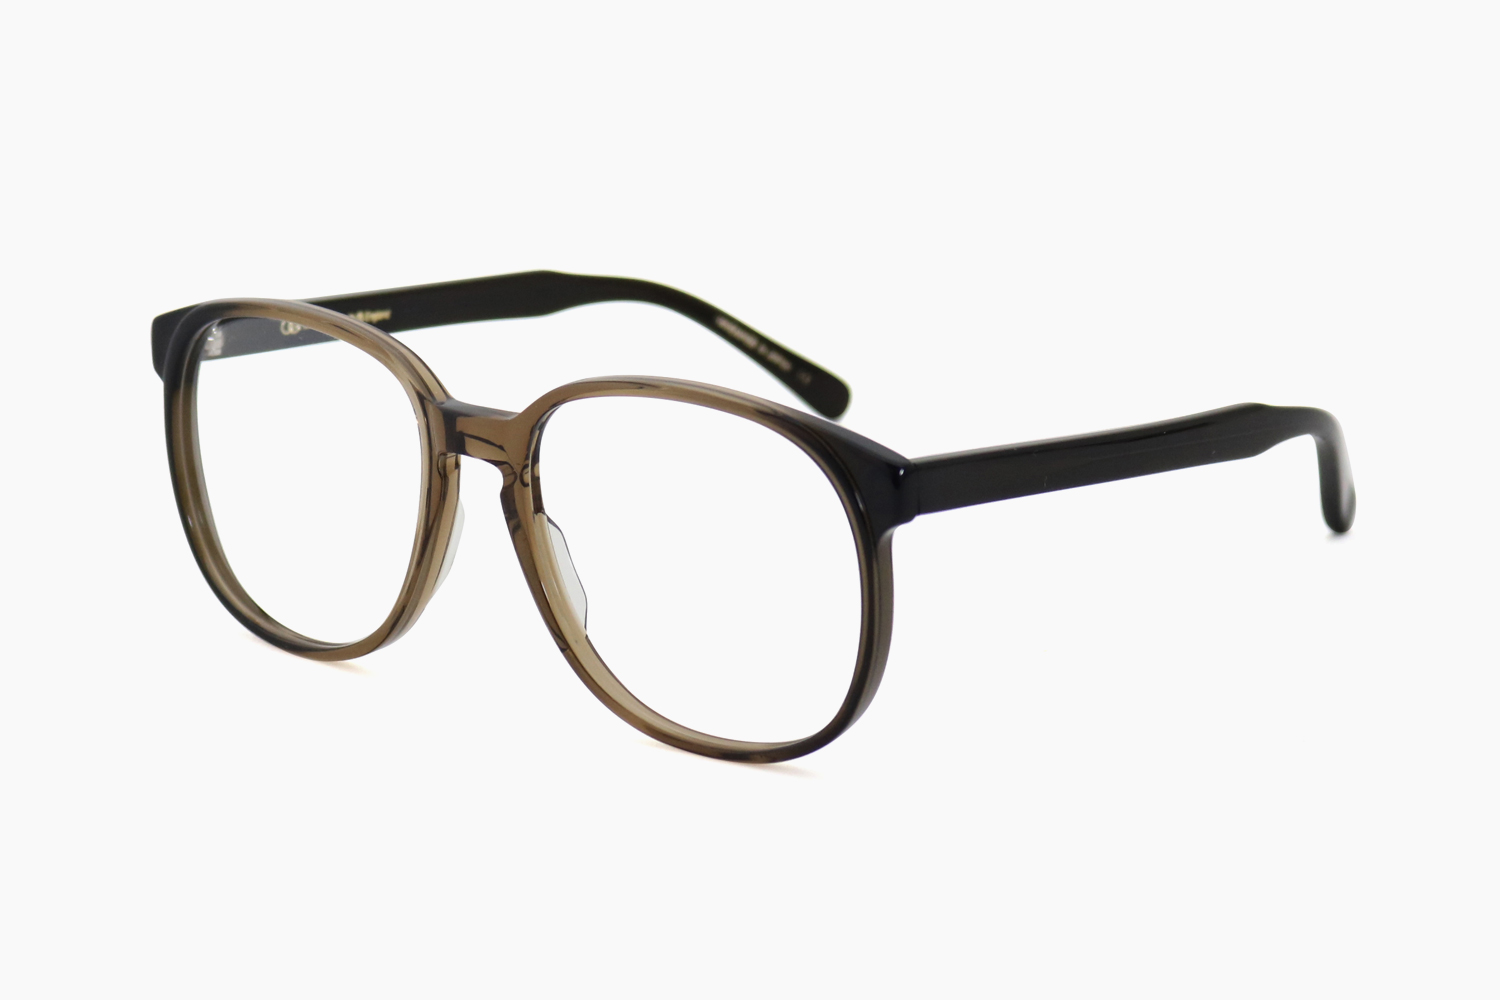 MURPHY E - Sepia Brown|OLIVER GOLDSMITH